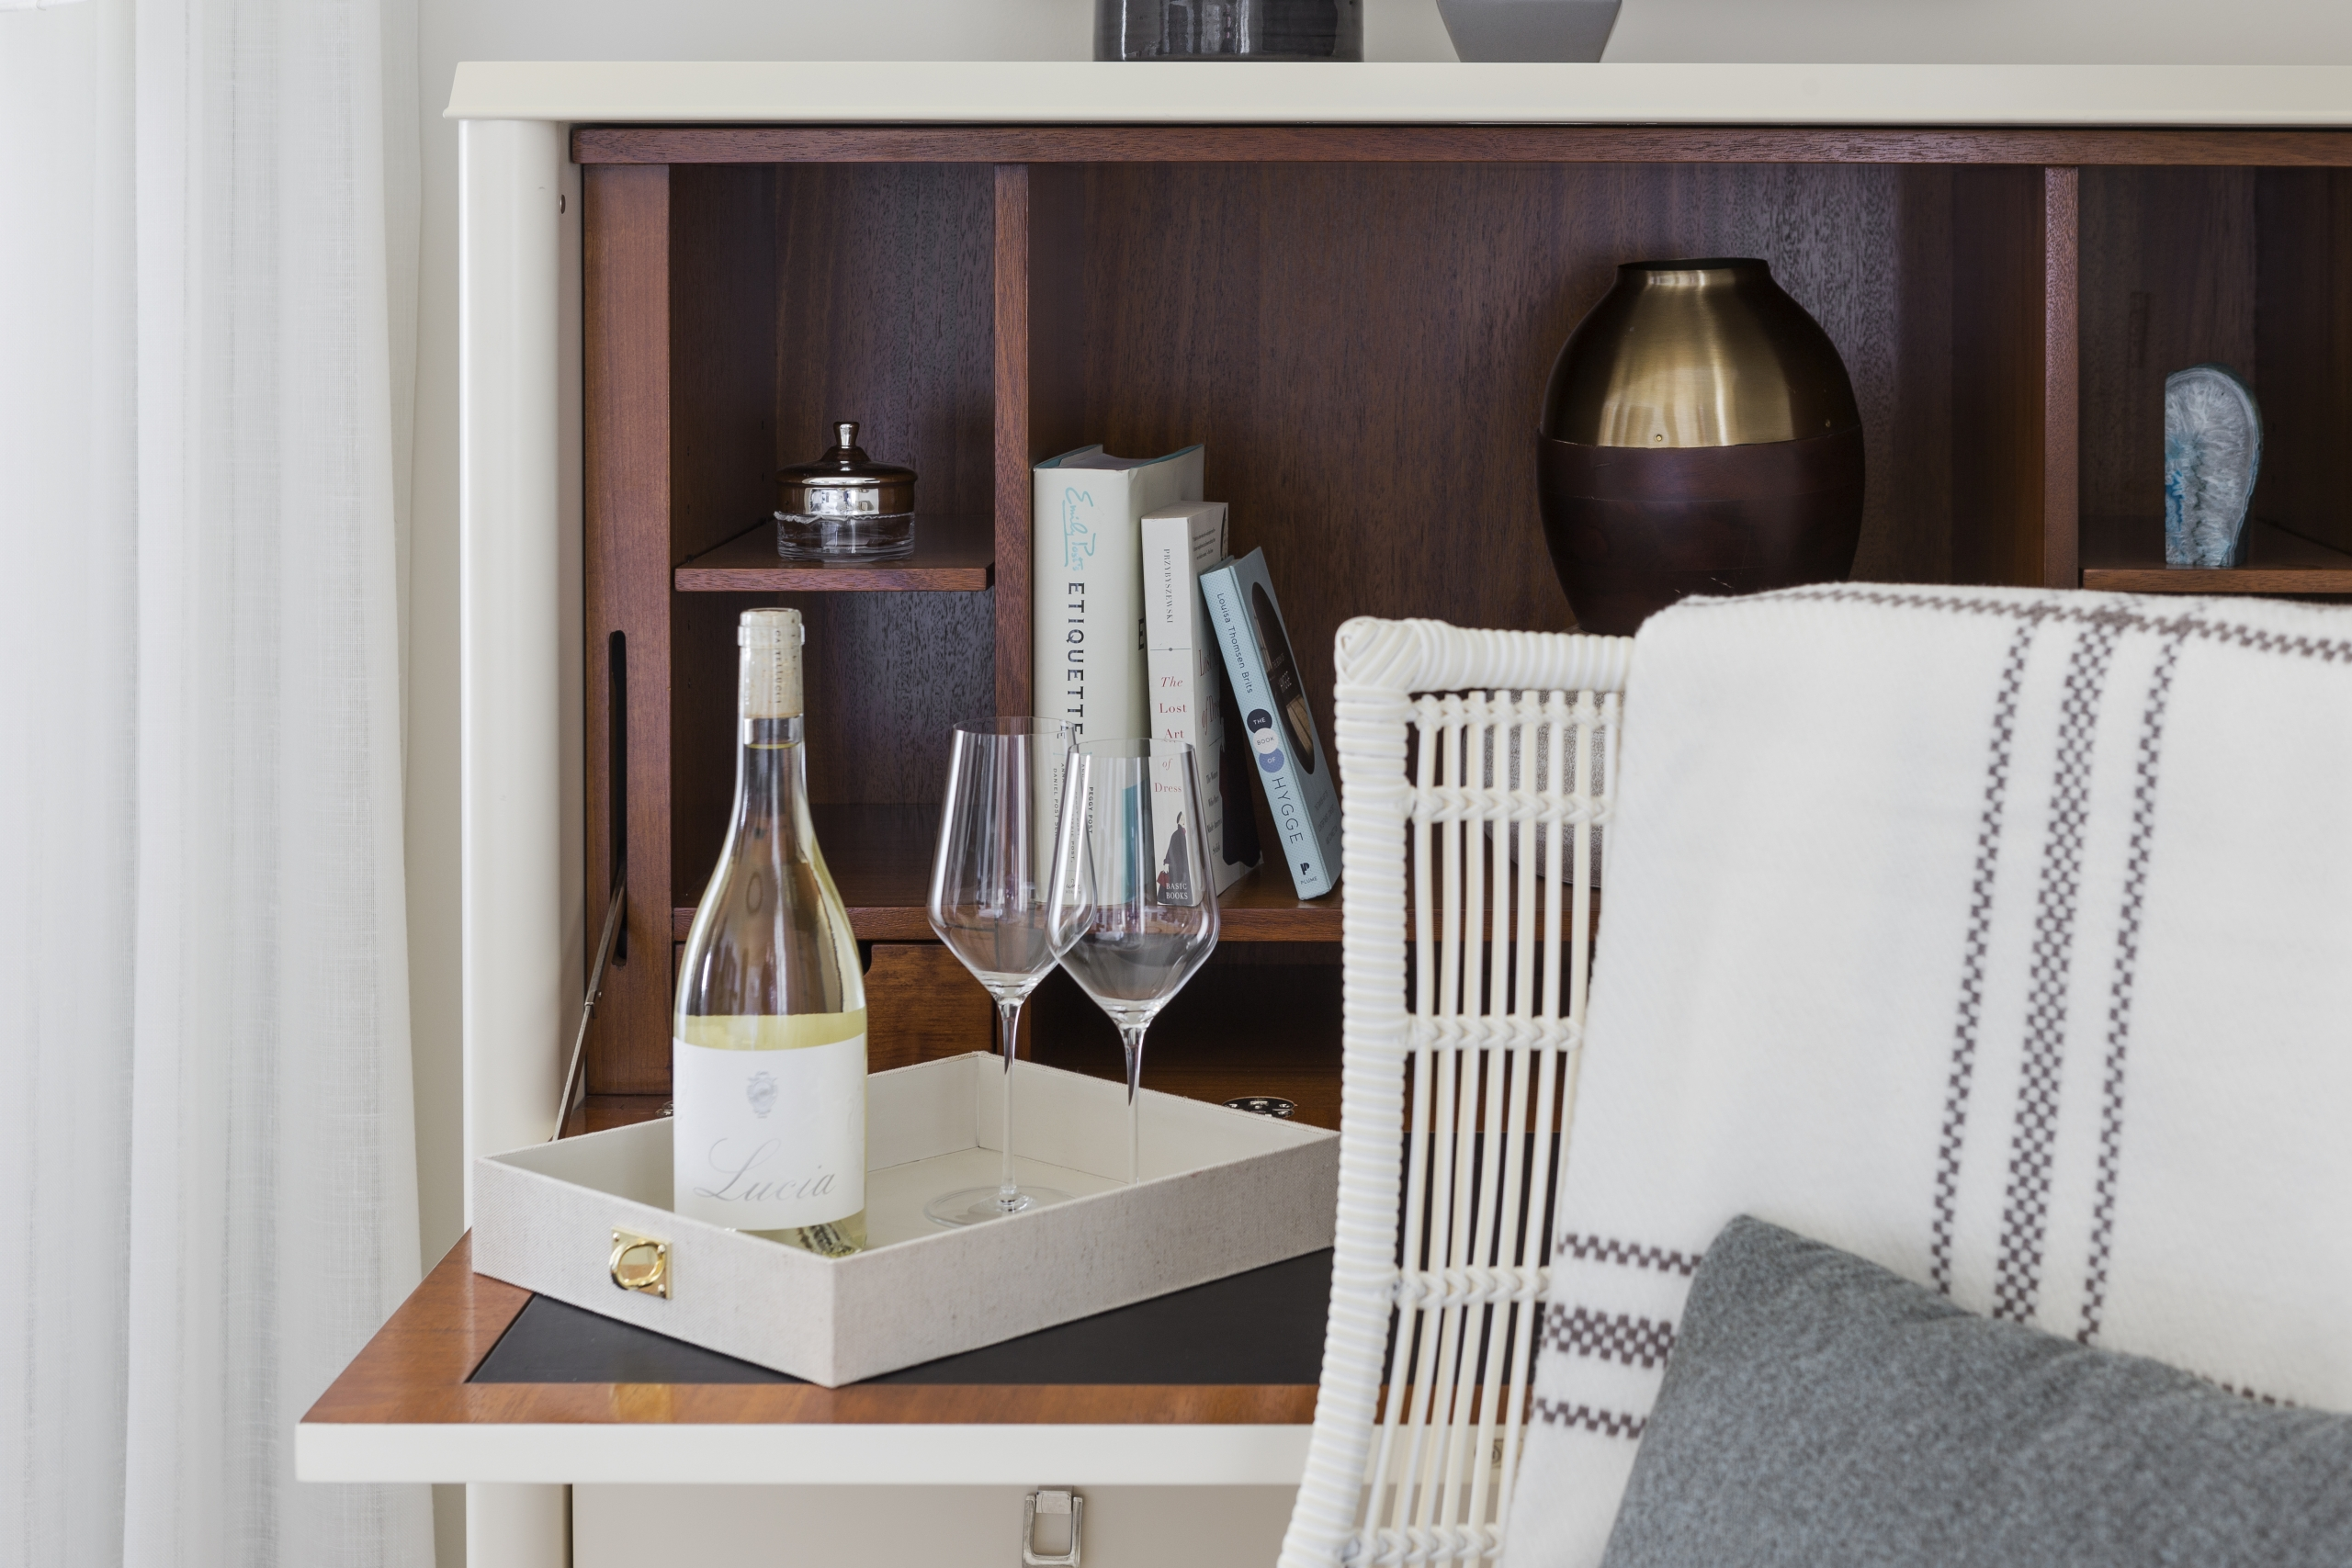 Bedside table with champagne and bookshelves